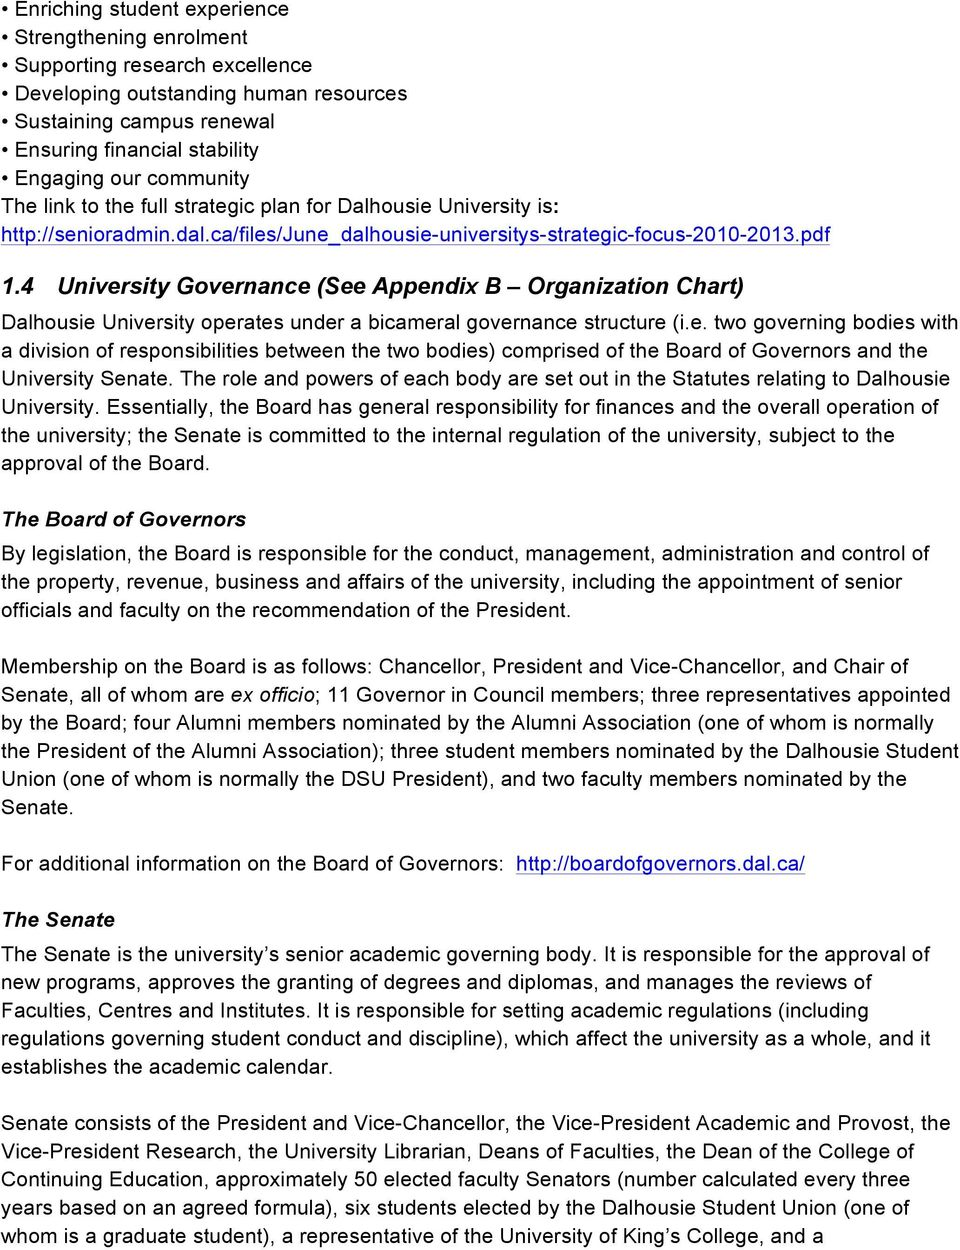 4 University Governance (See Appendix B Organization Chart) Dalhousie University operates under a bicameral governance structure (i.e. two governing bodies with a division of responsibilities between the two bodies) comprised of the Board of Governors and the University Senate.